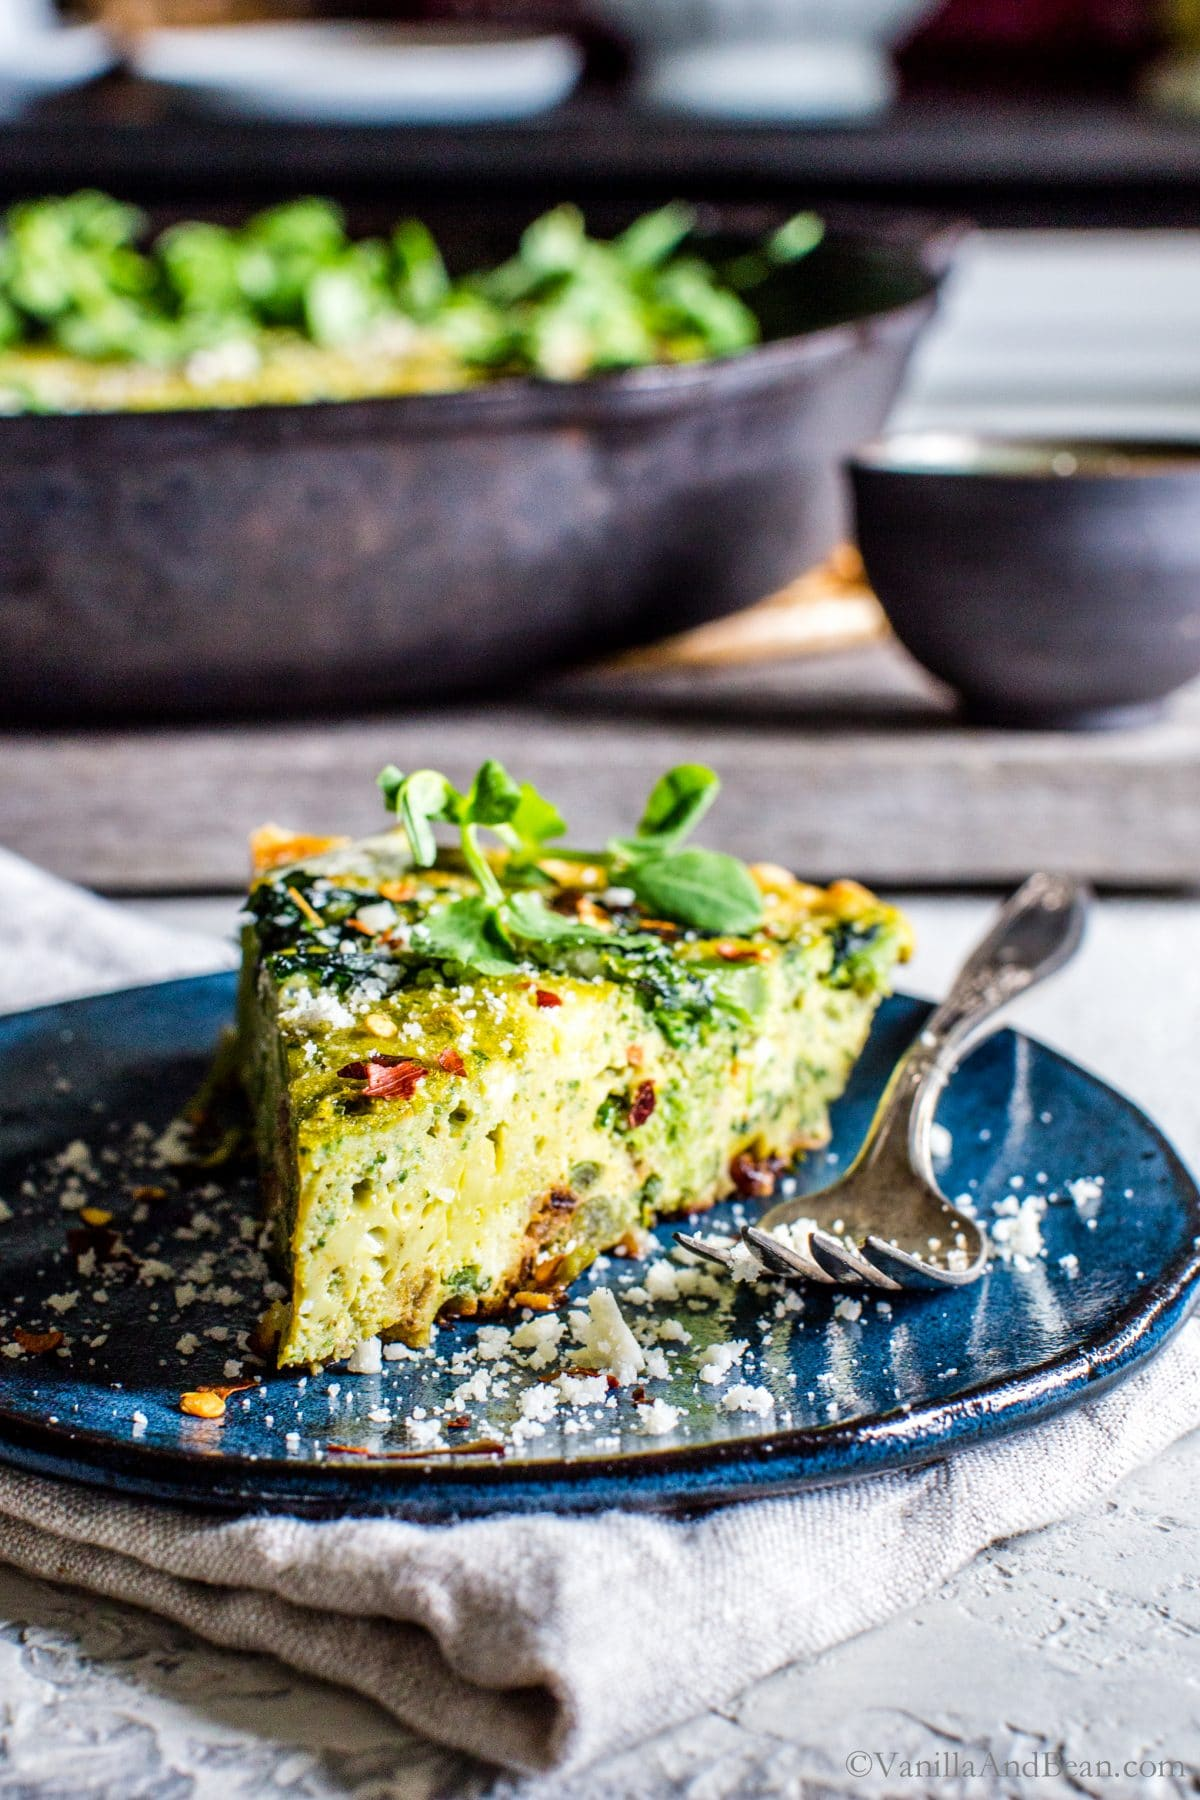 A flavorful, healthy frittata recipe for brunch or dinner: Broccoli Rabe Frittata with Pesto Ricotta is packed with veggies and comes together with ease. #Breakfast #Healthy #Recipe #Frittata #vegetarian + #glutenfree